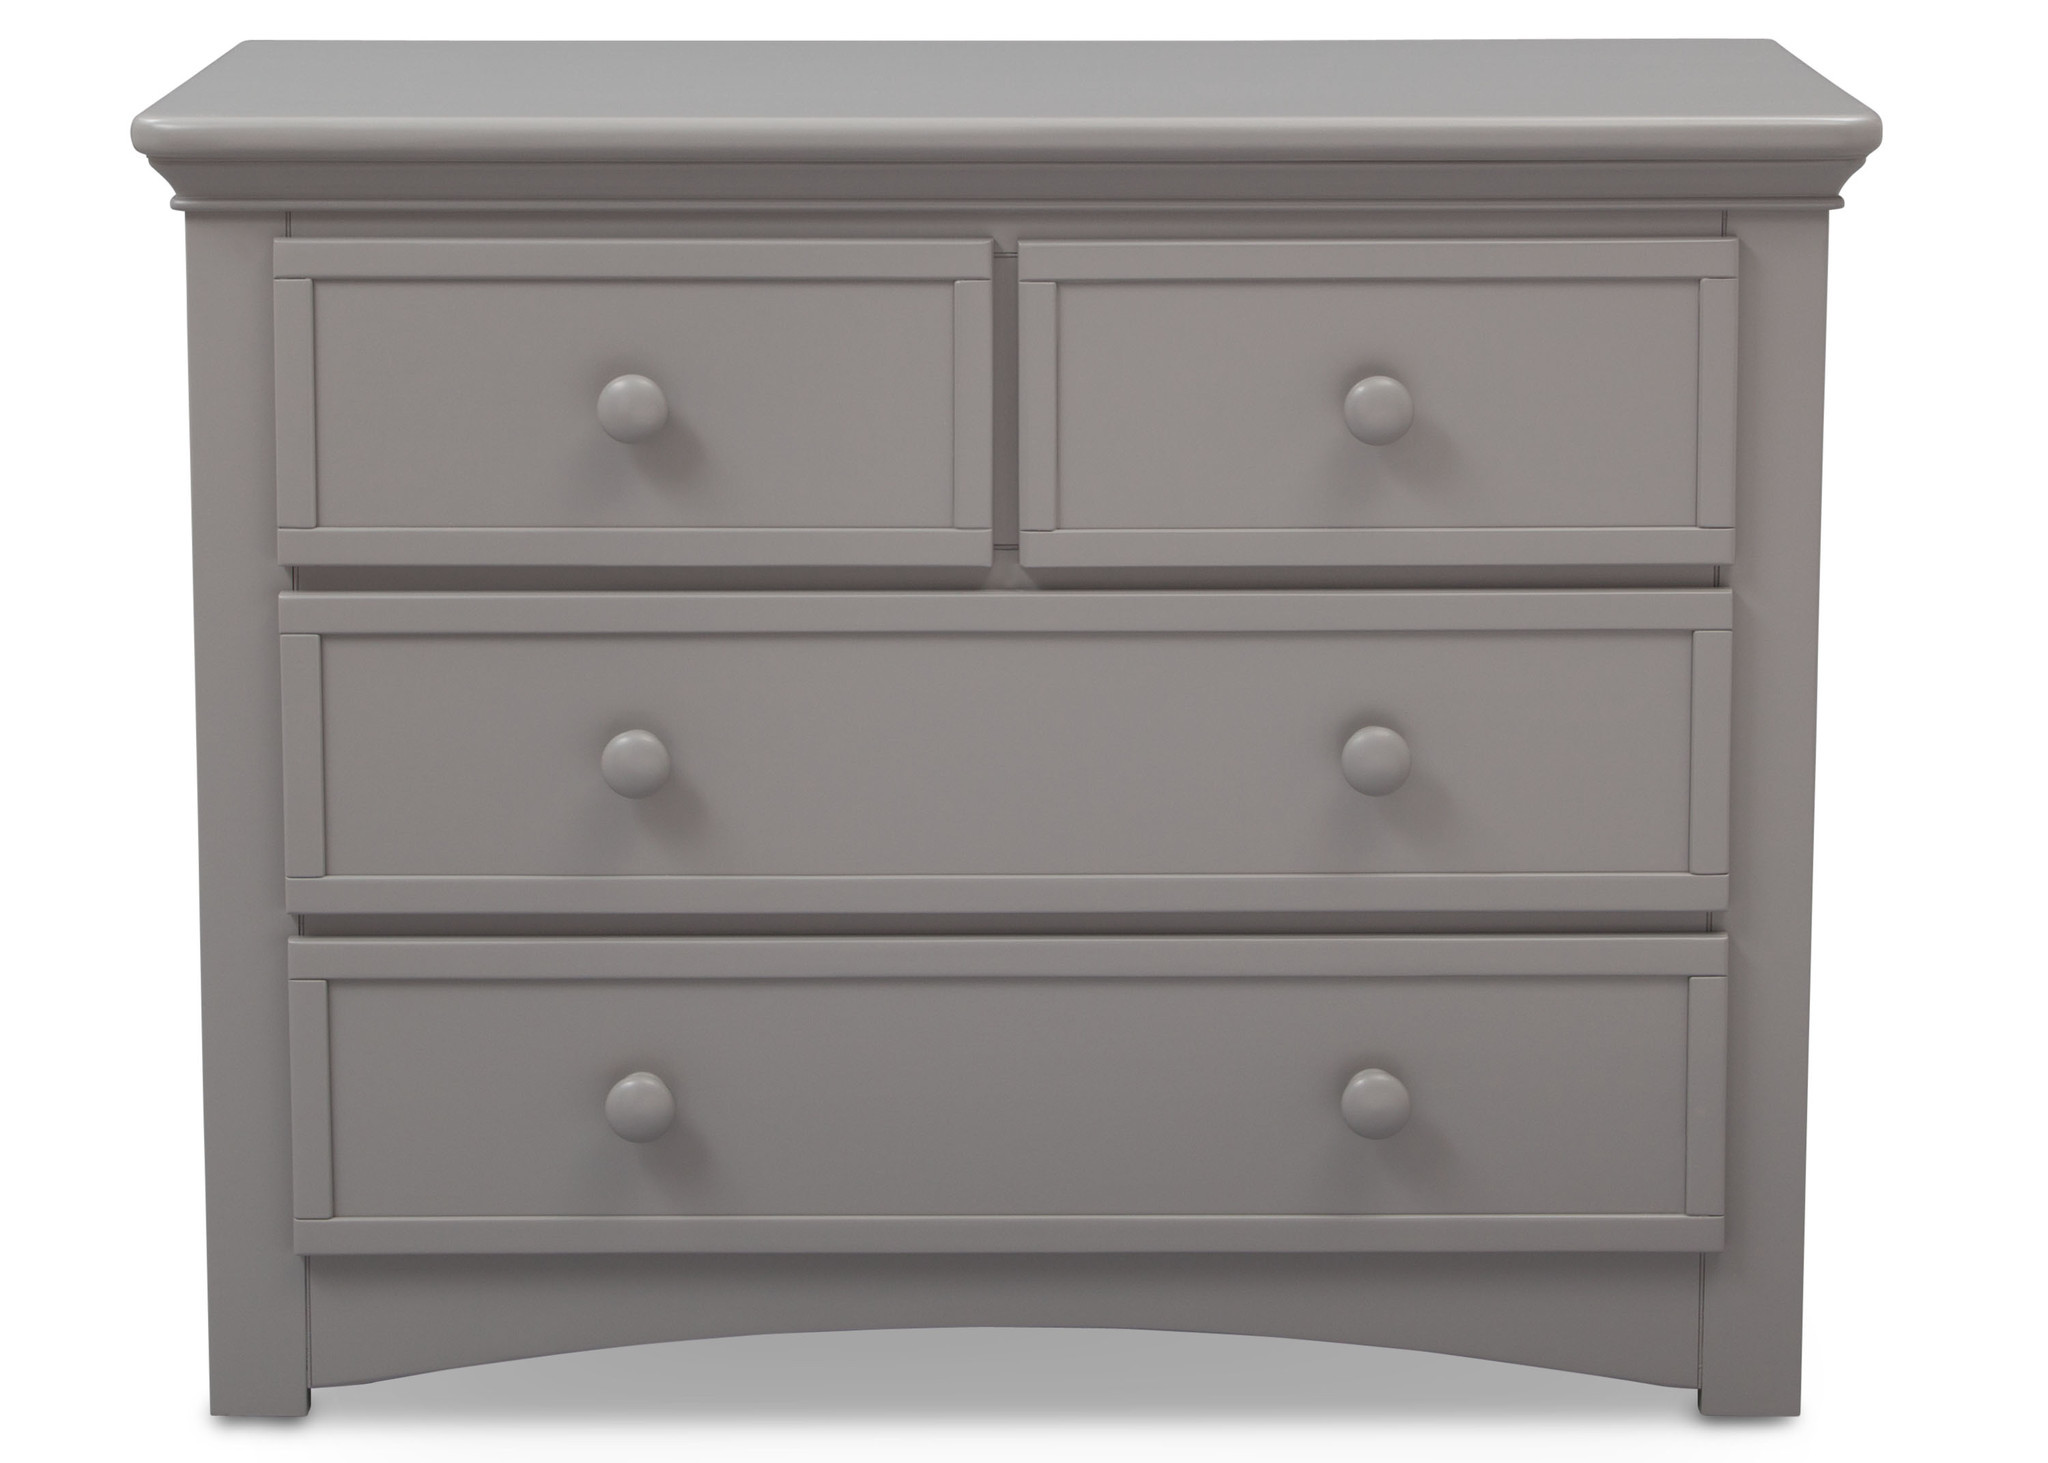 Unique Furniture Design Cabinet with 4 Drawer Dresser for Bedroom Ideas: Amusing 4 Drawer Dresser With Beautiful Knob Pull Drawers For Home Furniture Ideas